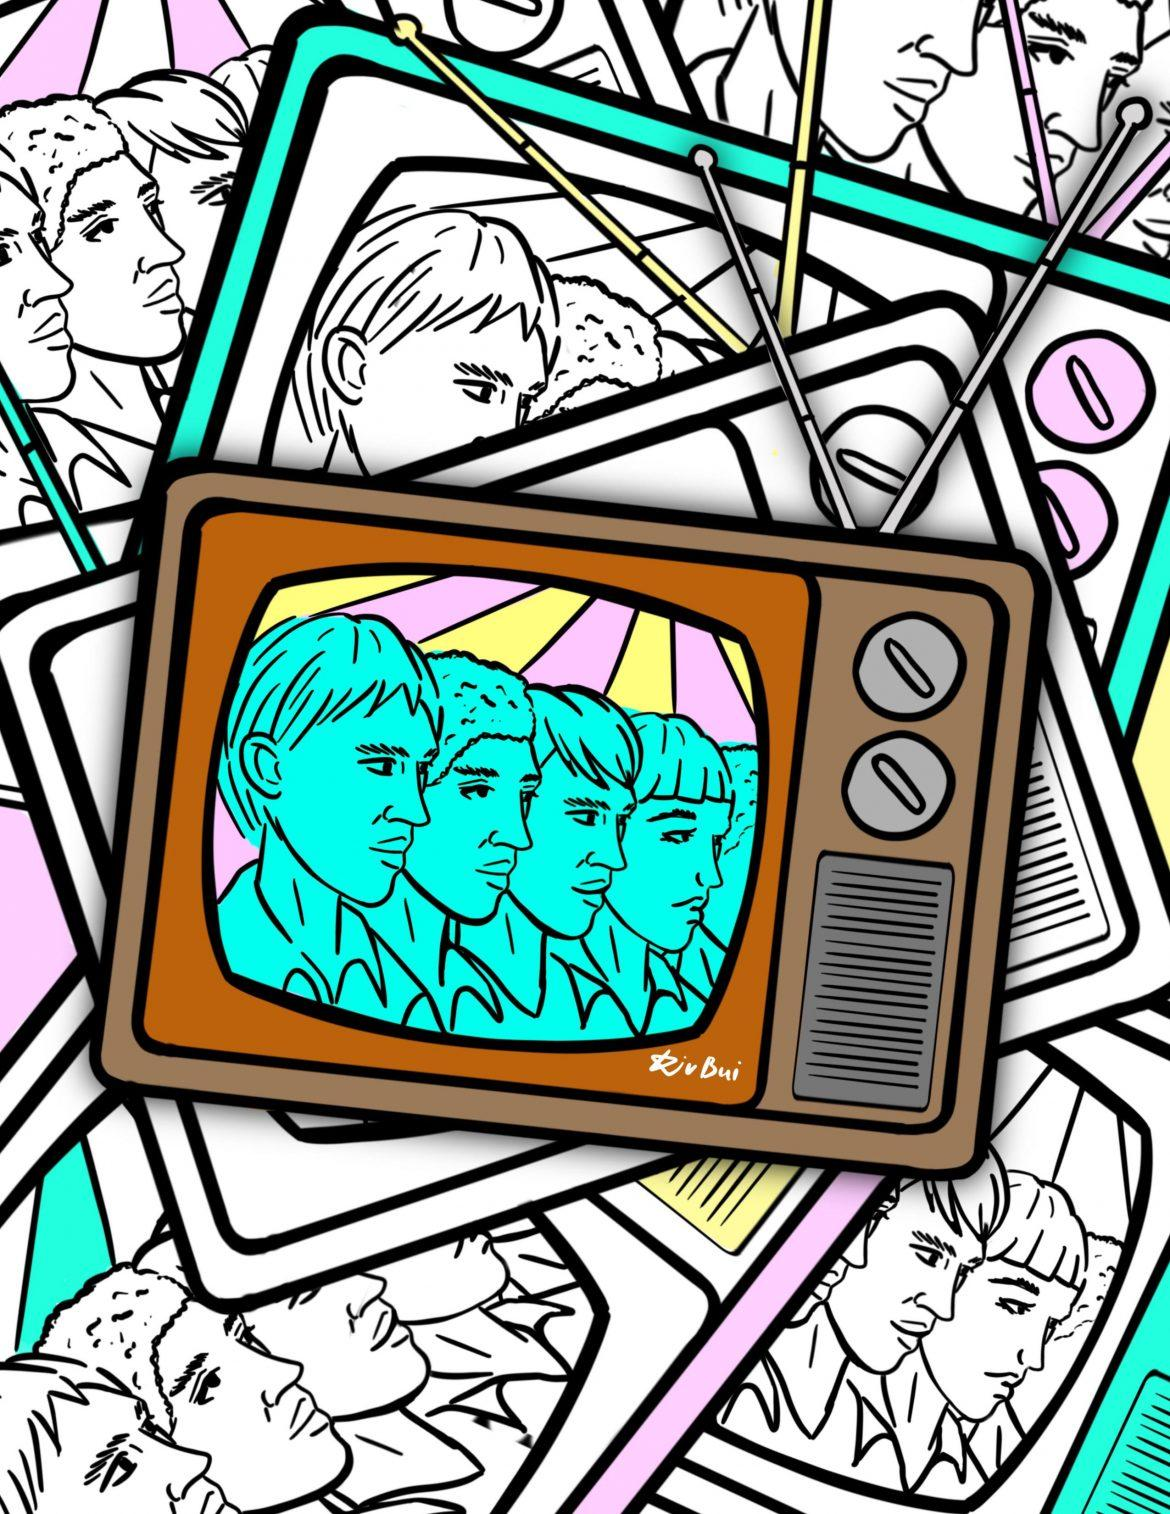 television+with+4+blue+faces+drawn+in+it